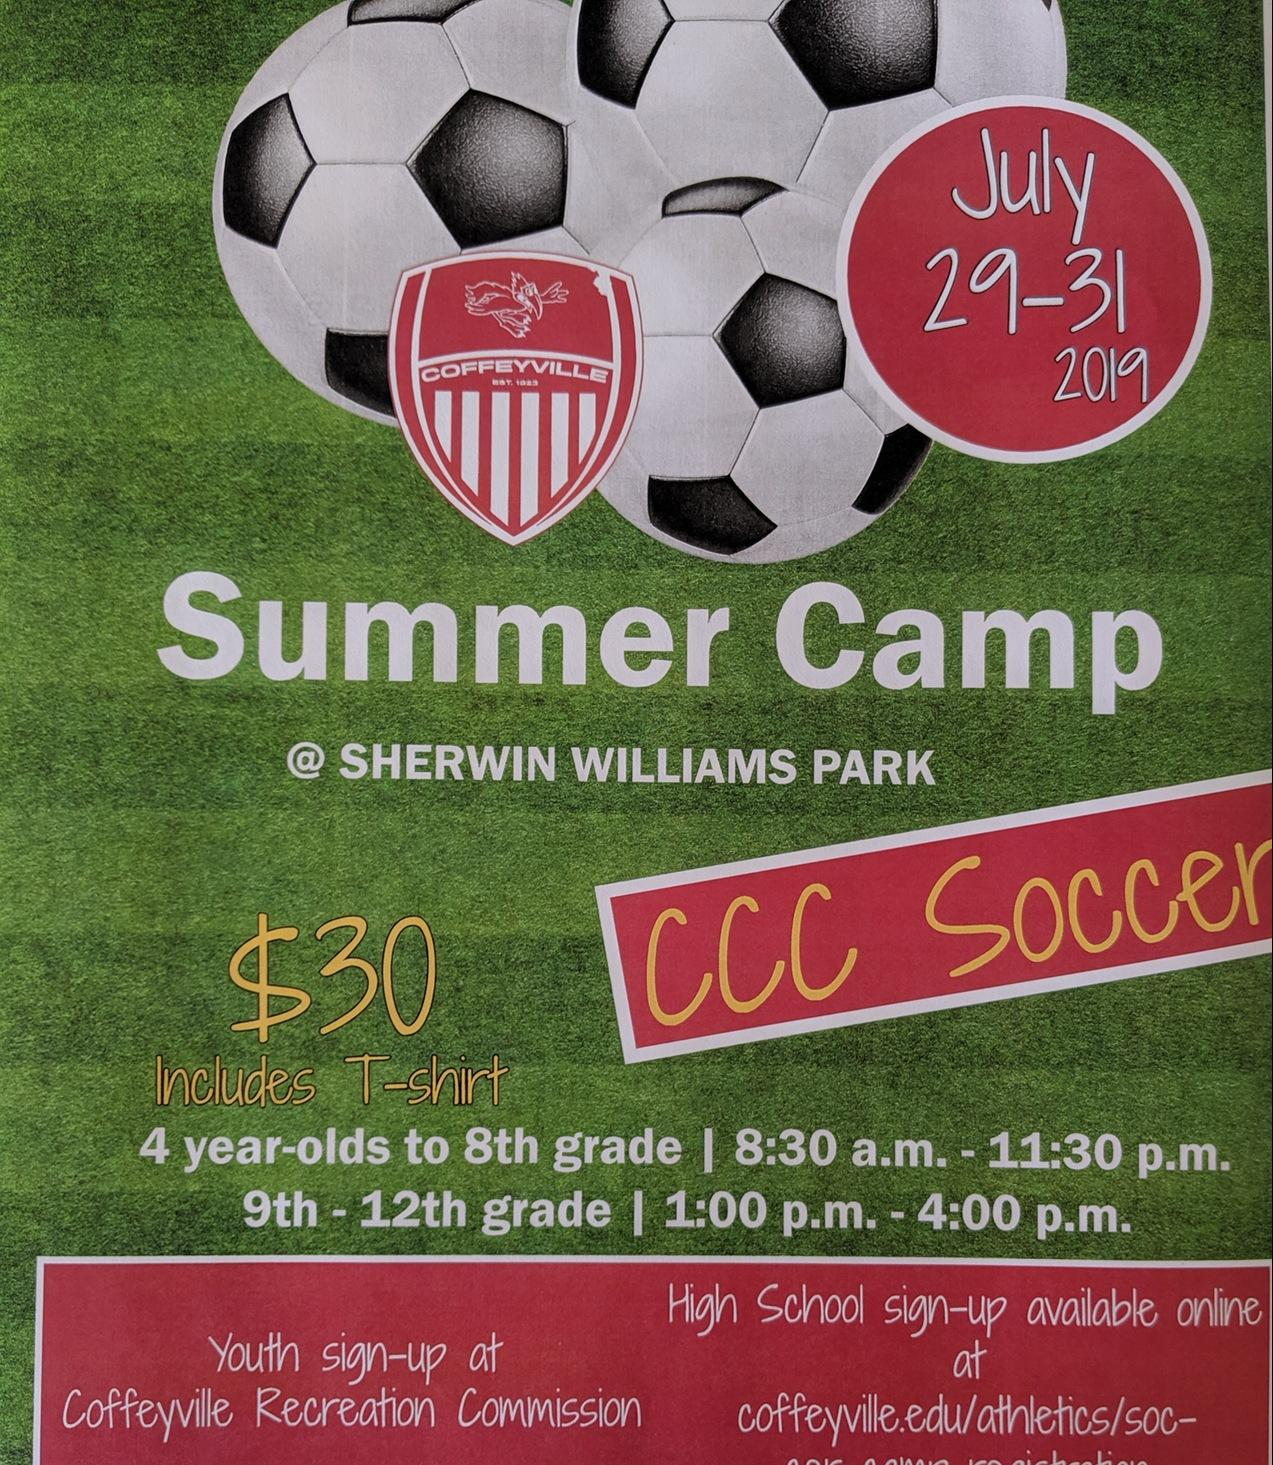 CCC Youth Soccer Camp - July 29-31